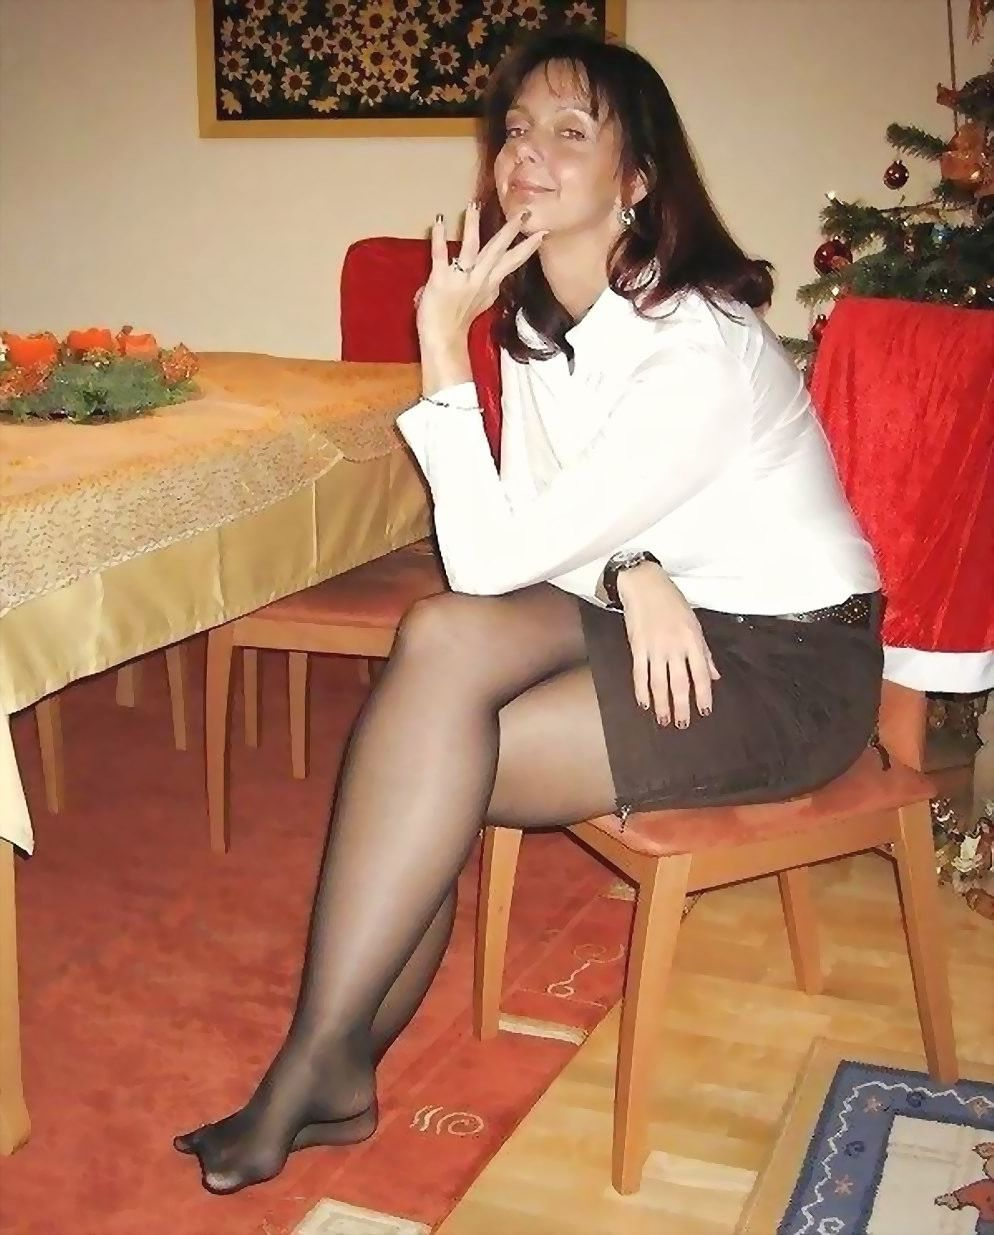 Her pantyhose and legs